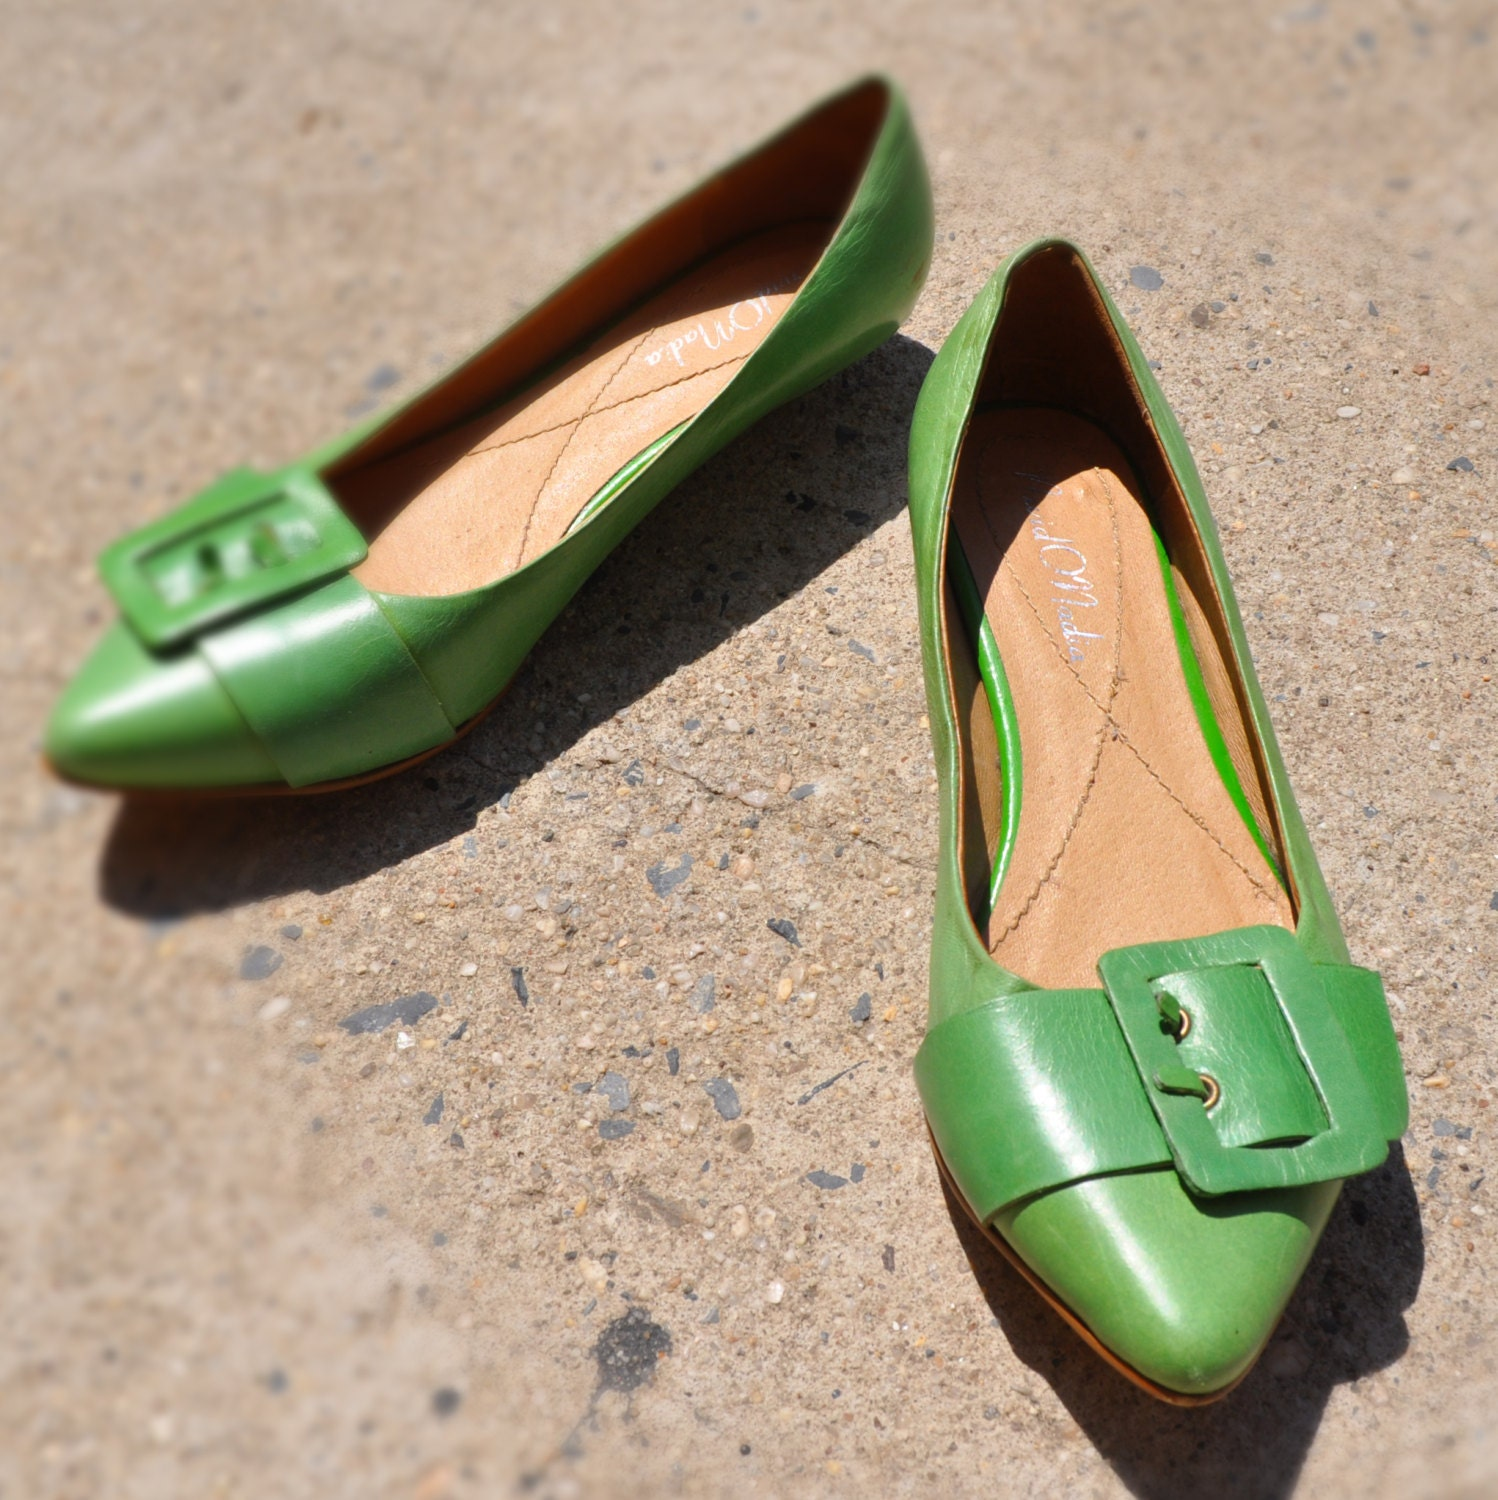 Ridiculously adorable vintage shoes